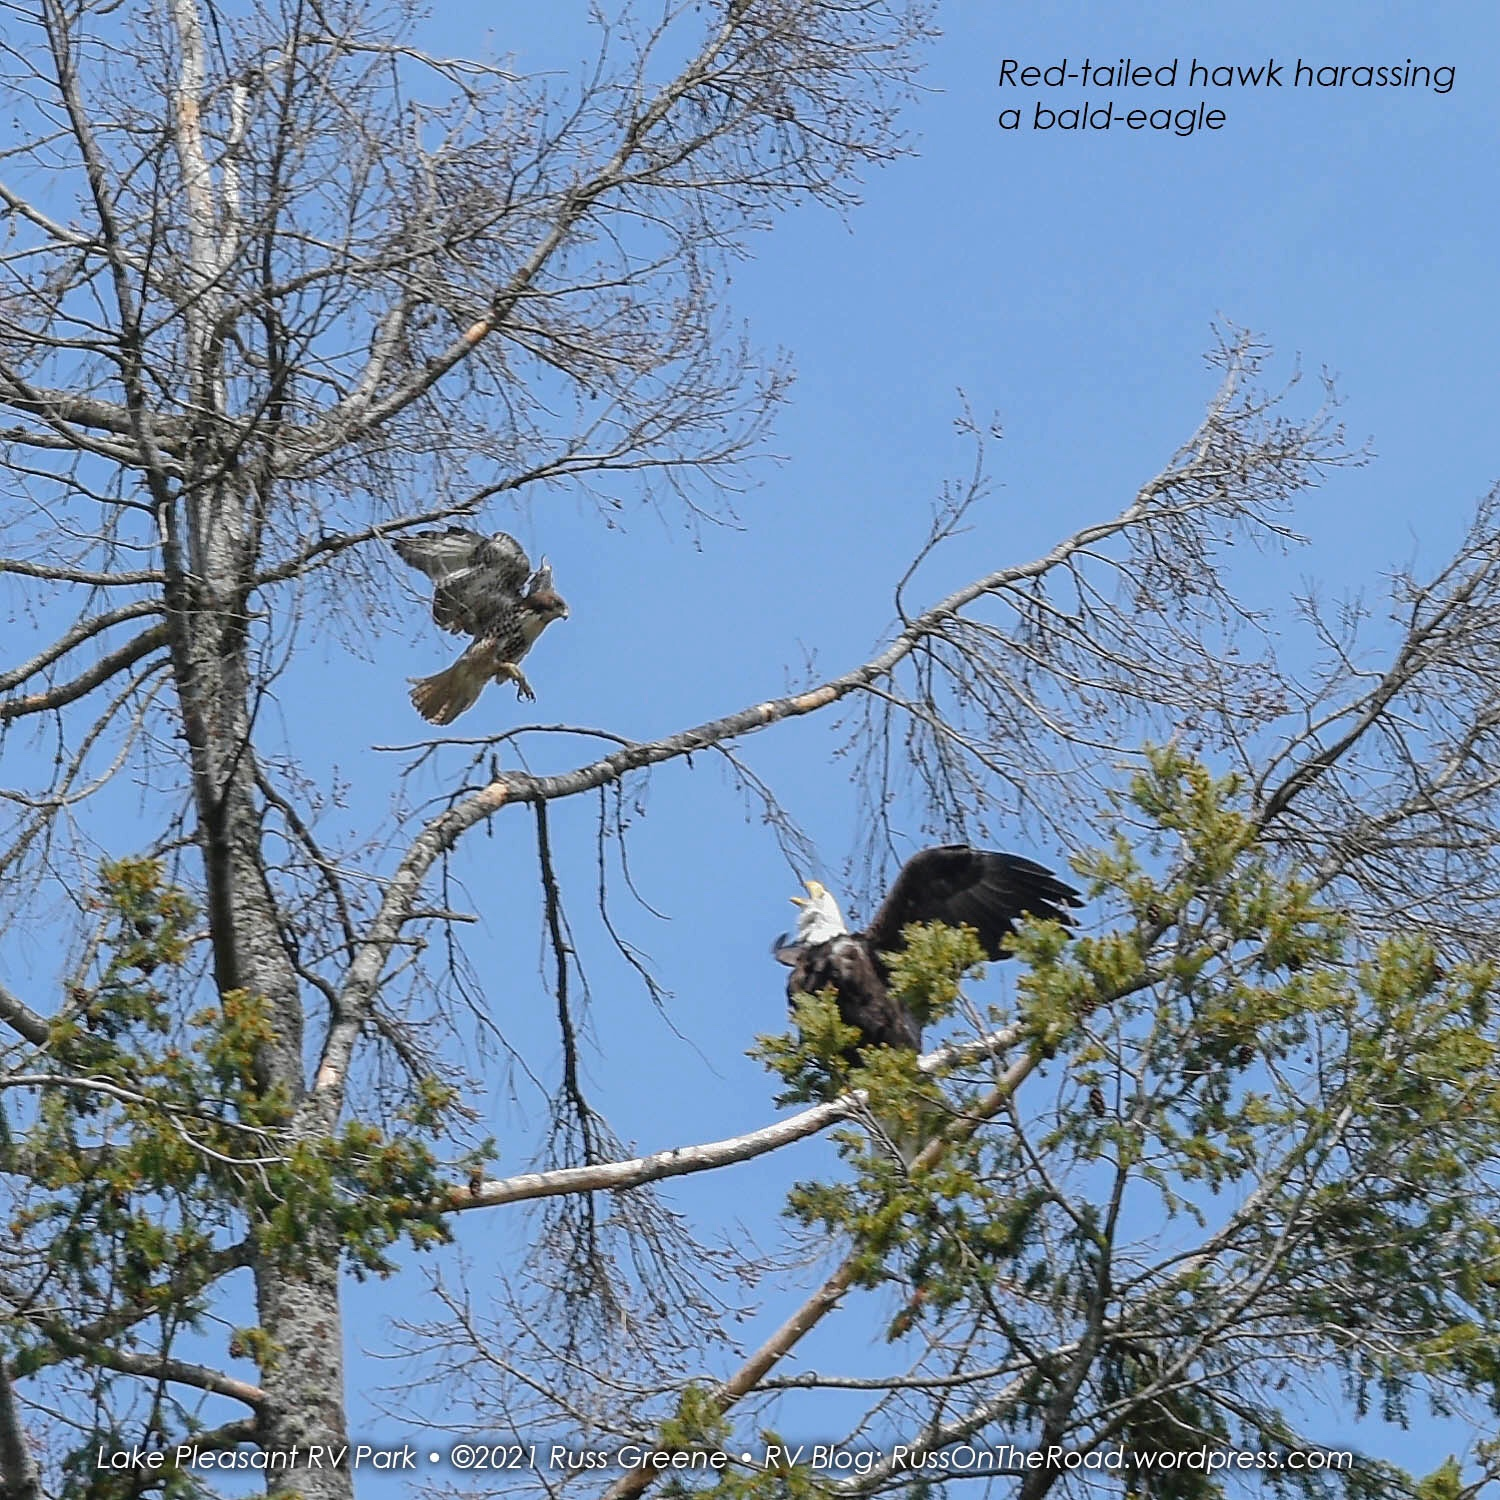 A red-tailed hawk harasses a bald eagle in a territorial dispute.